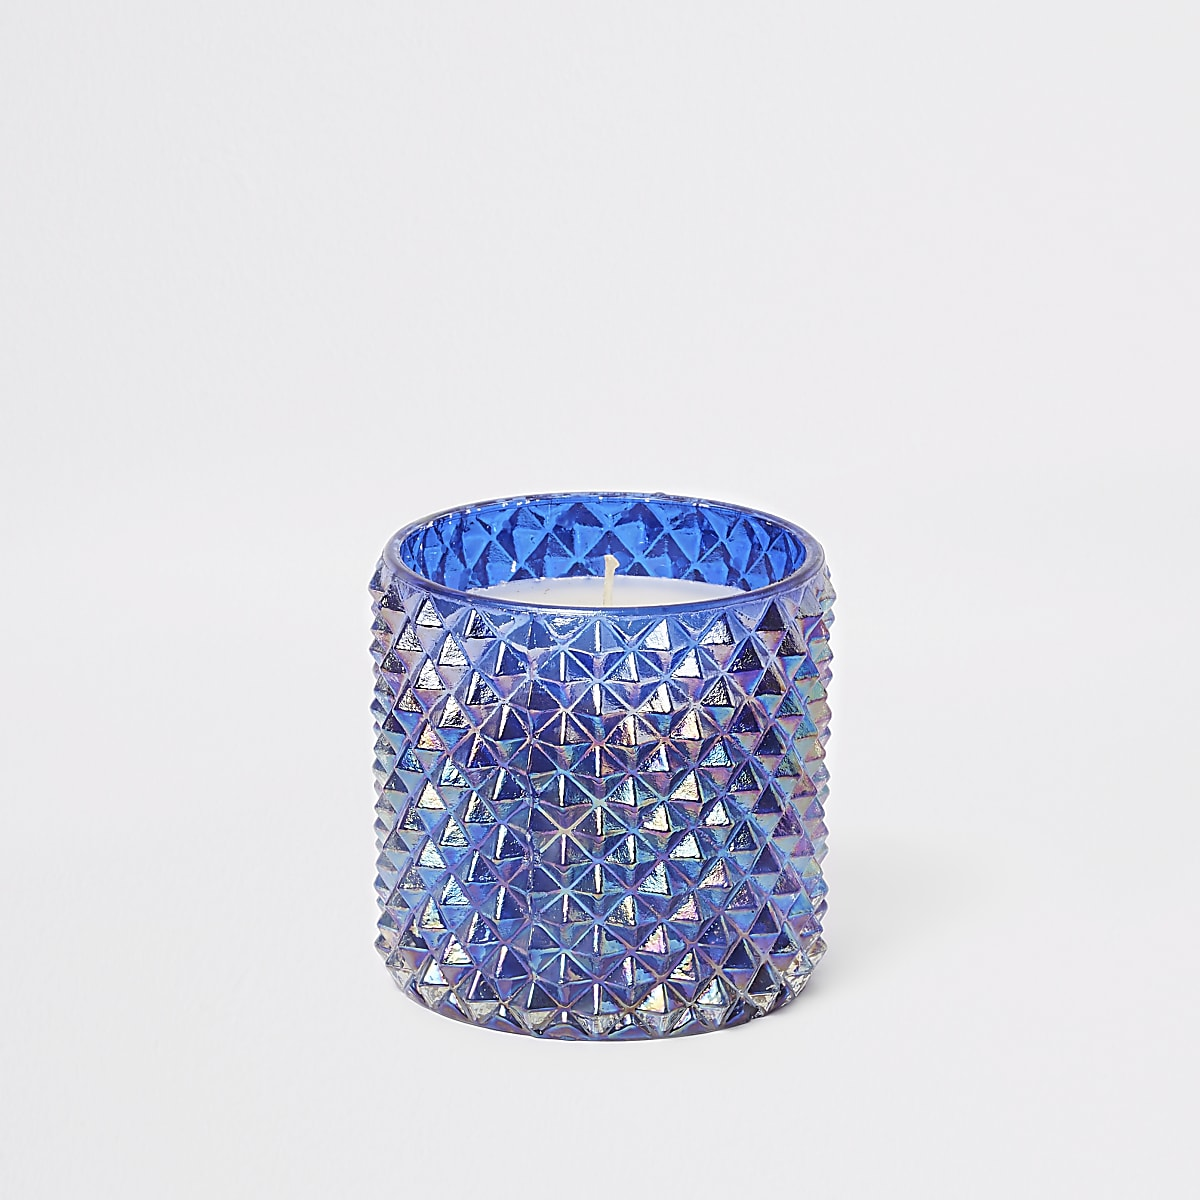 Blue iridescent spikey large candle